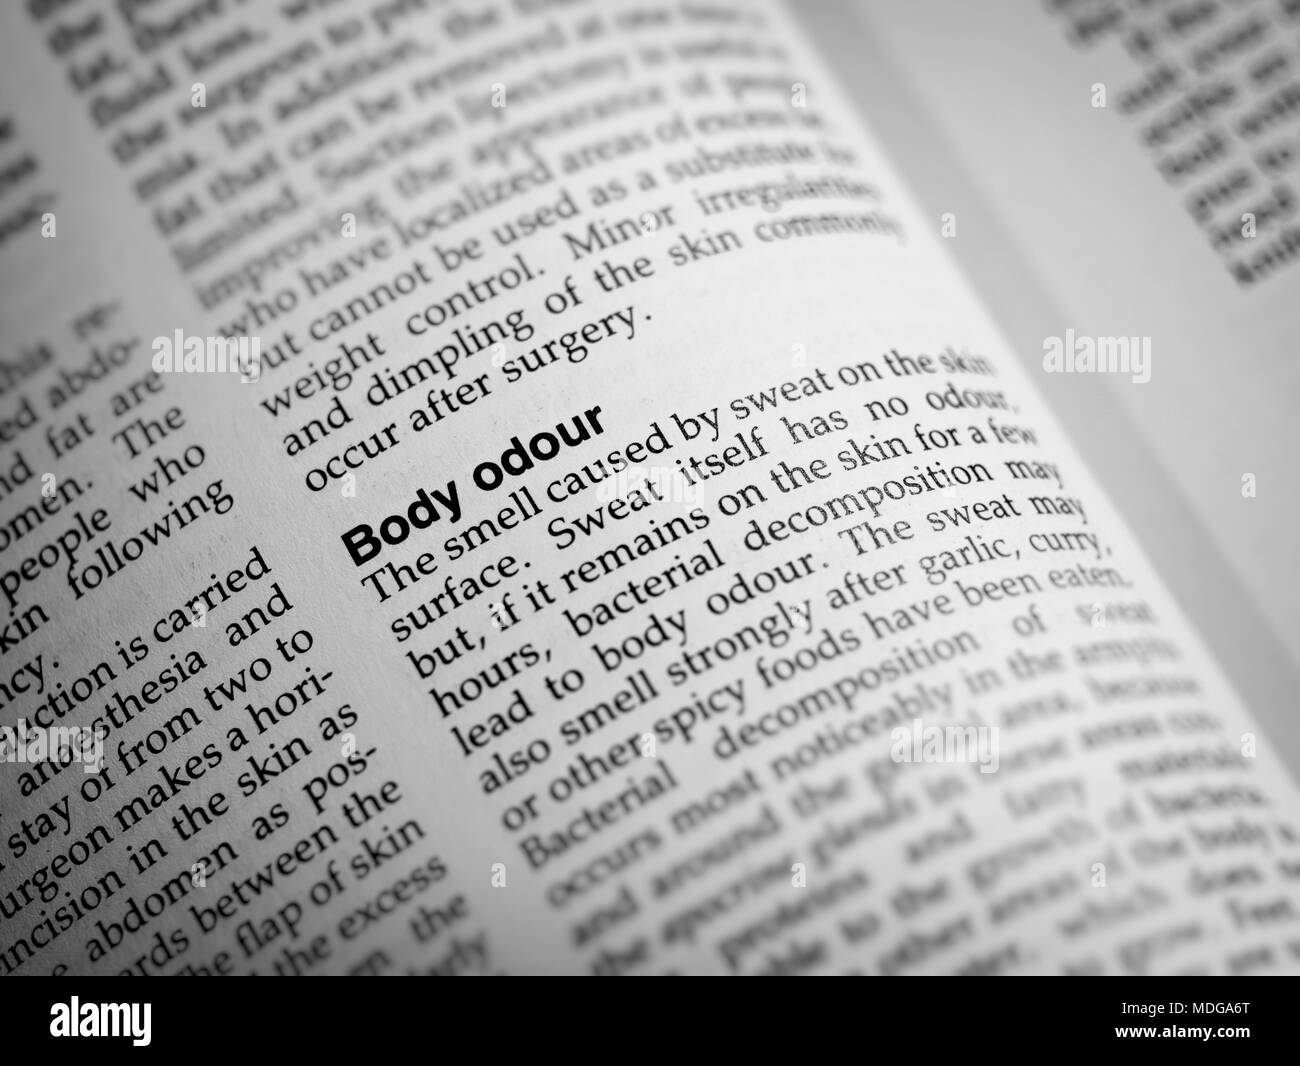 Definition of Body odour as found in the Complete Family Health Encyclopedia published by Dorling Kindersley. - Stock Image